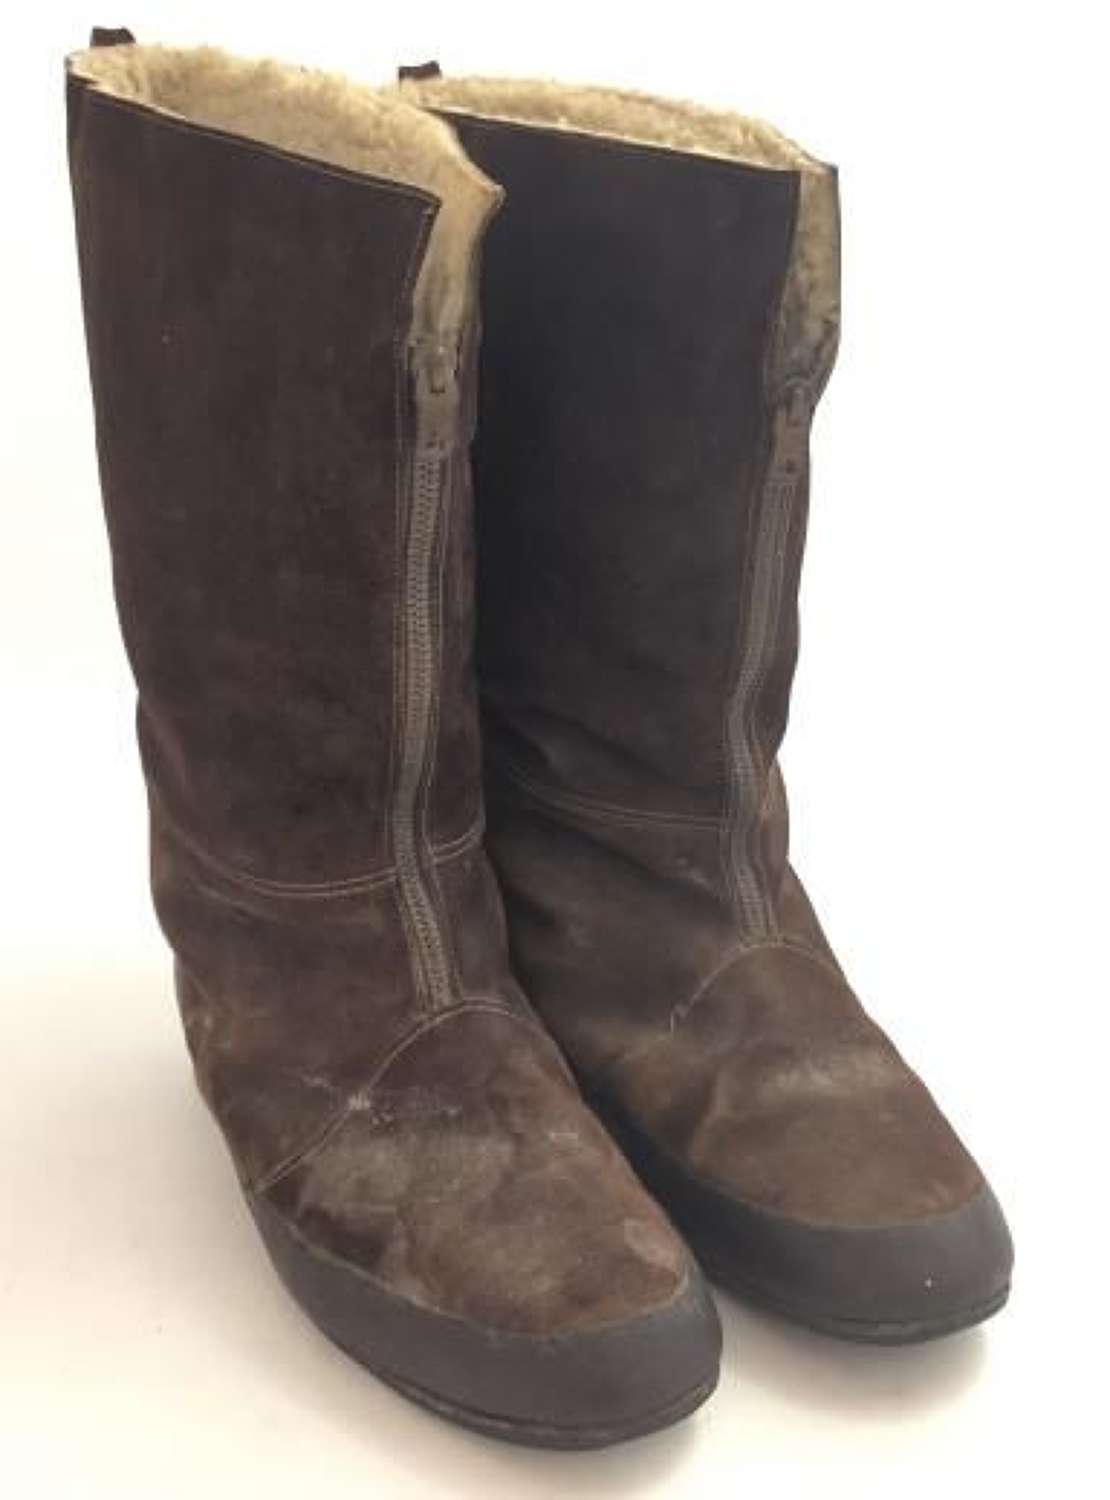 Original 1940 Pattern RAF Flying Boots - Size 9